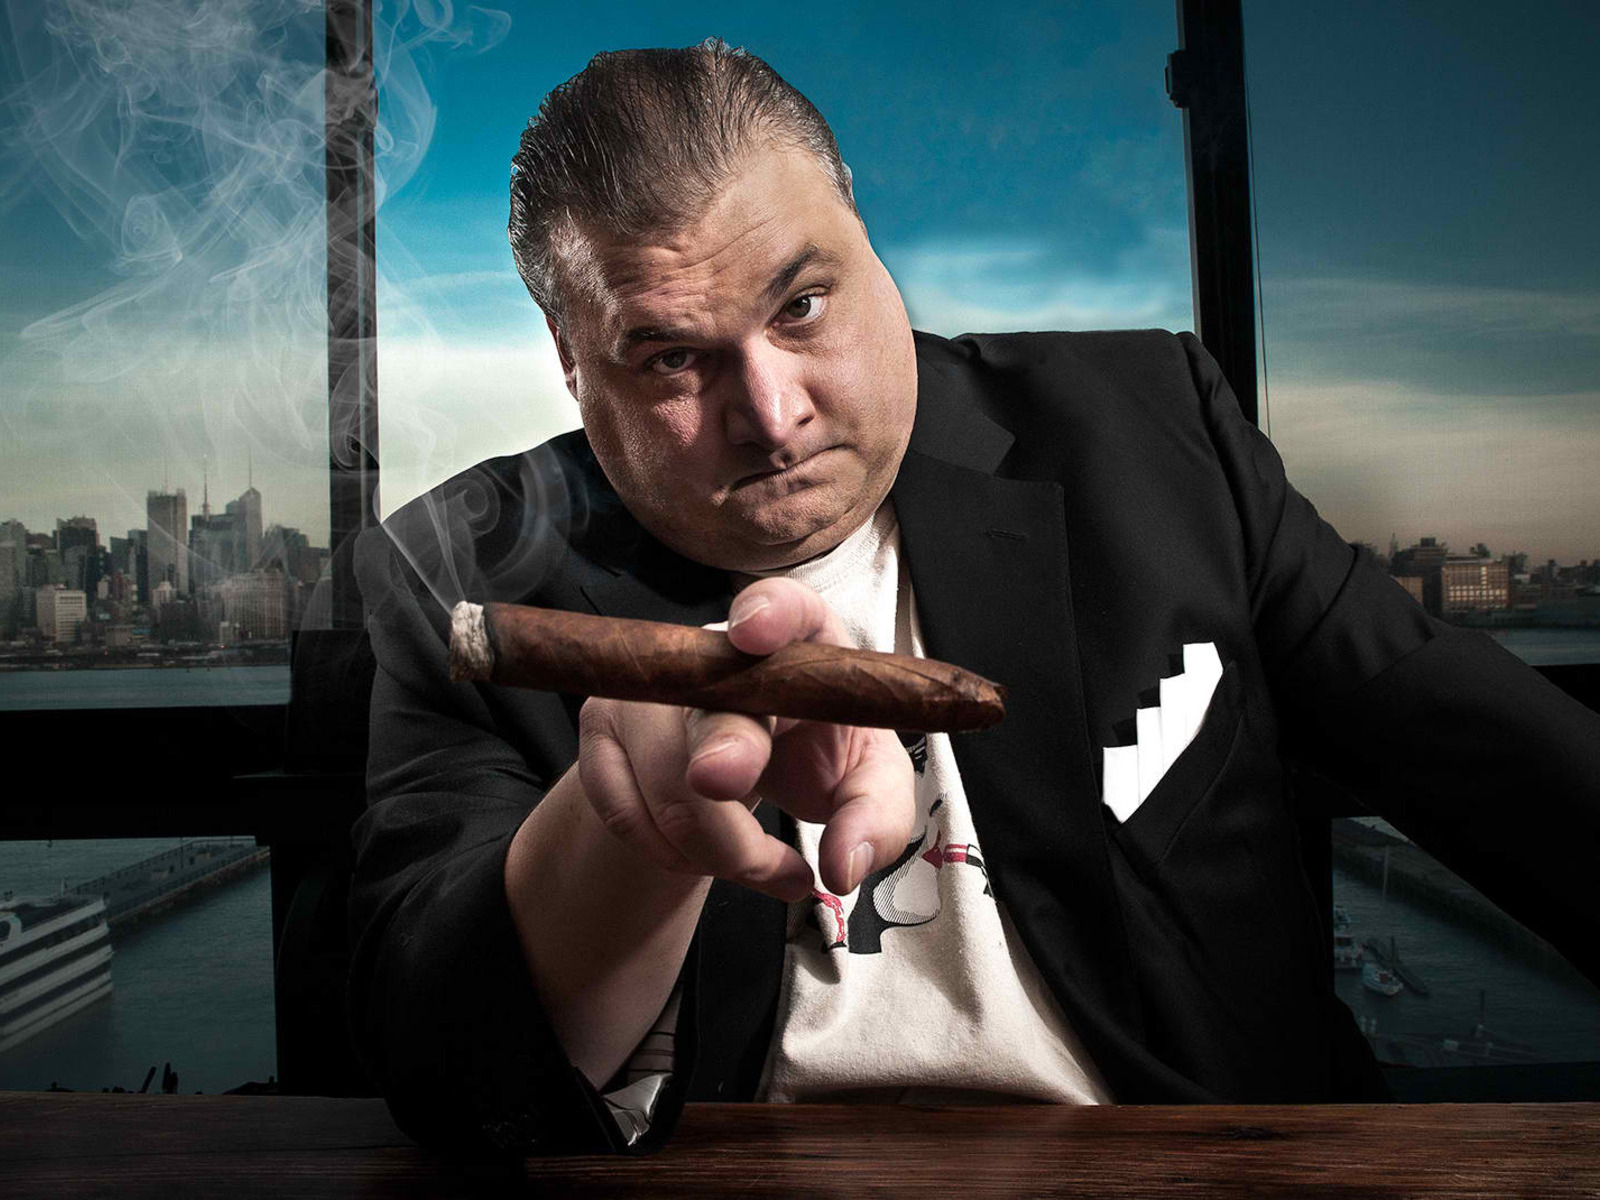 Artie Lange New York Artie Lange Tickets Governors Levittown May 5 3 2019 At 8 00 Pm